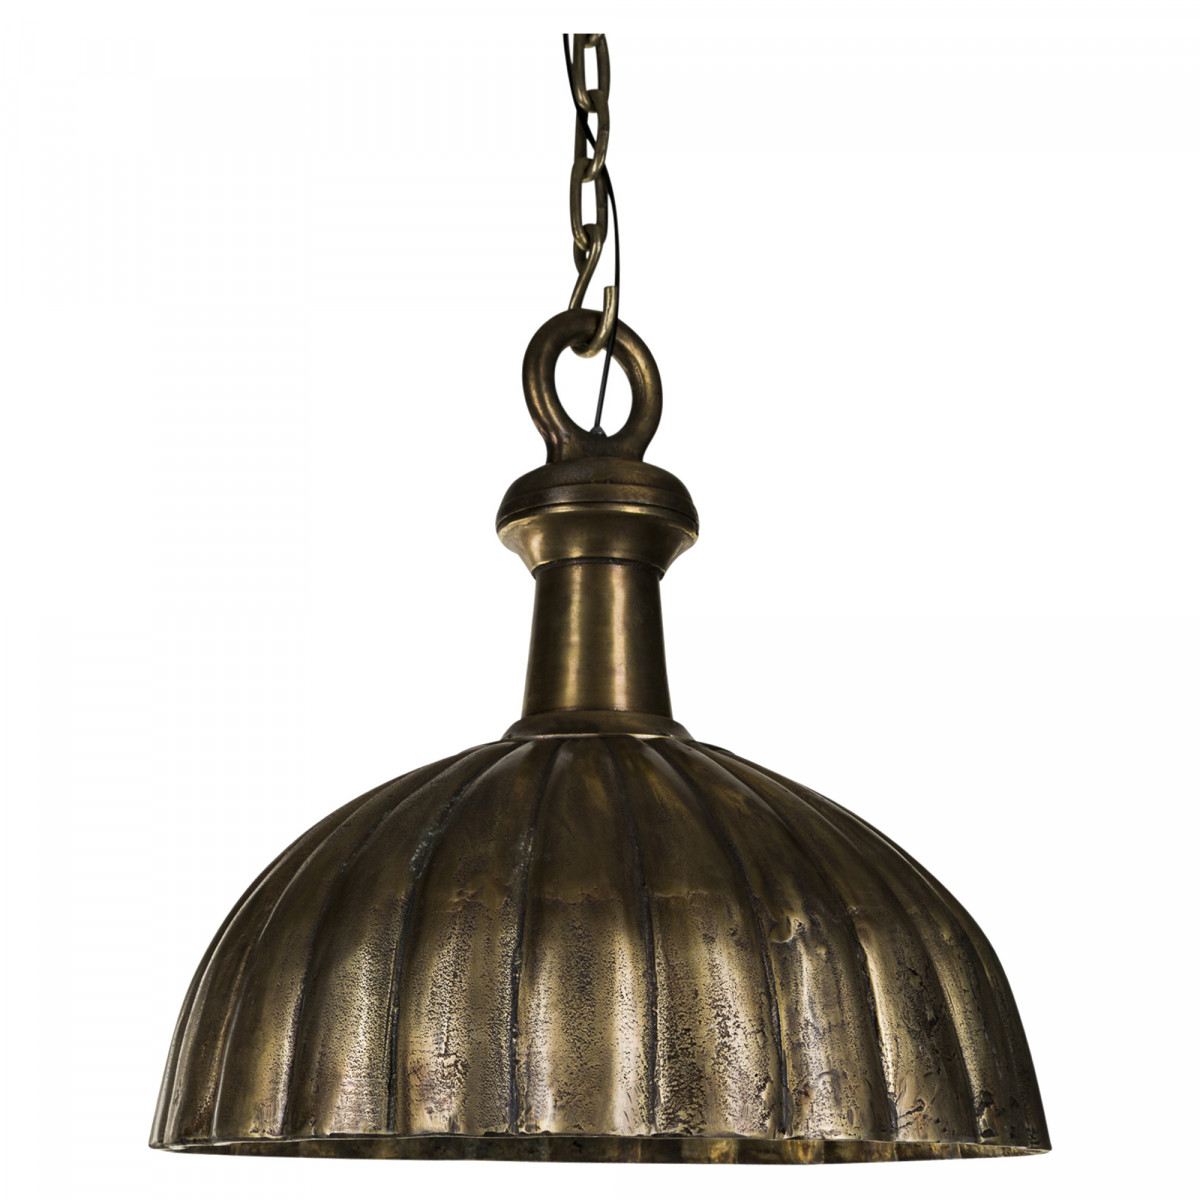 PTMD aluminium brass lamp hanging curved M